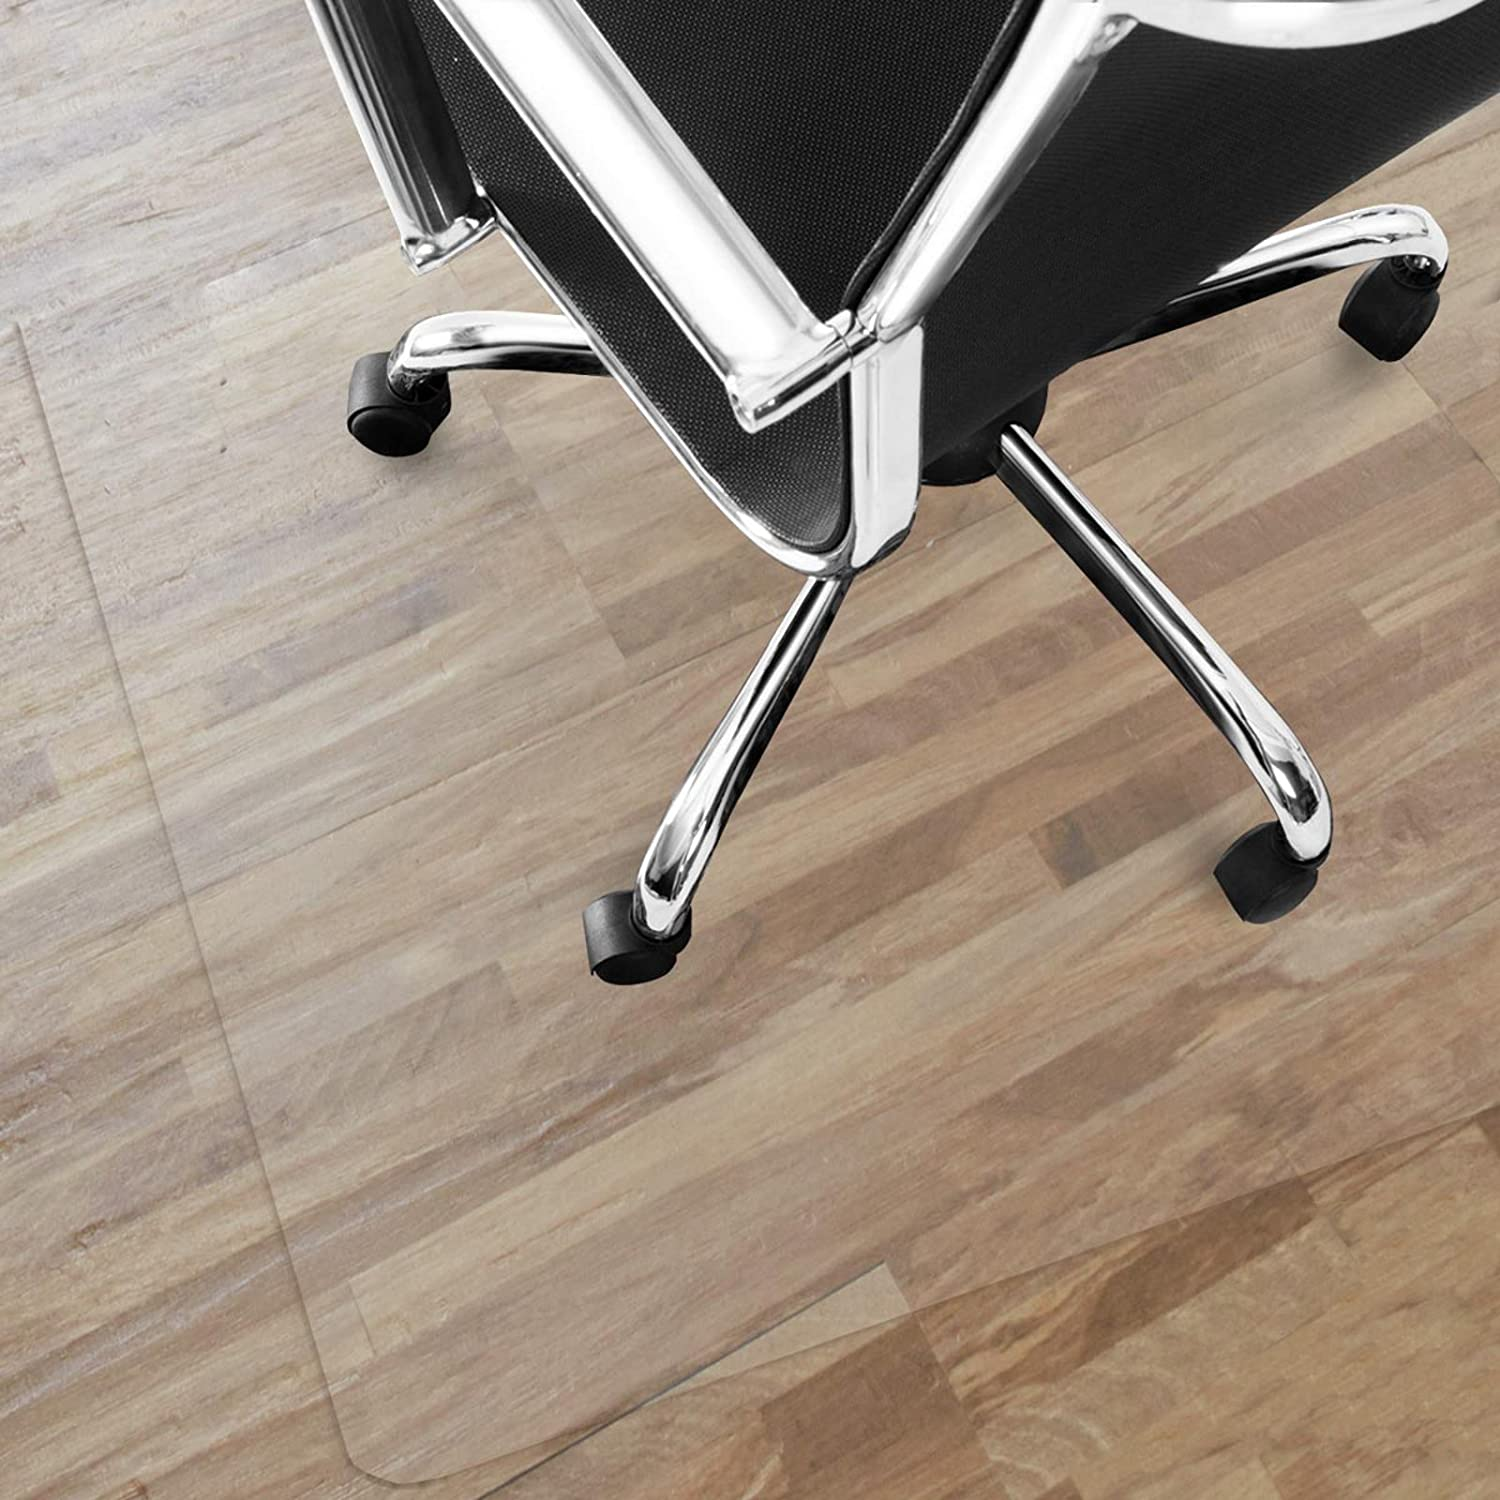 Office Marshal Tapis Protege Sol Protection Parquets Sol Dur